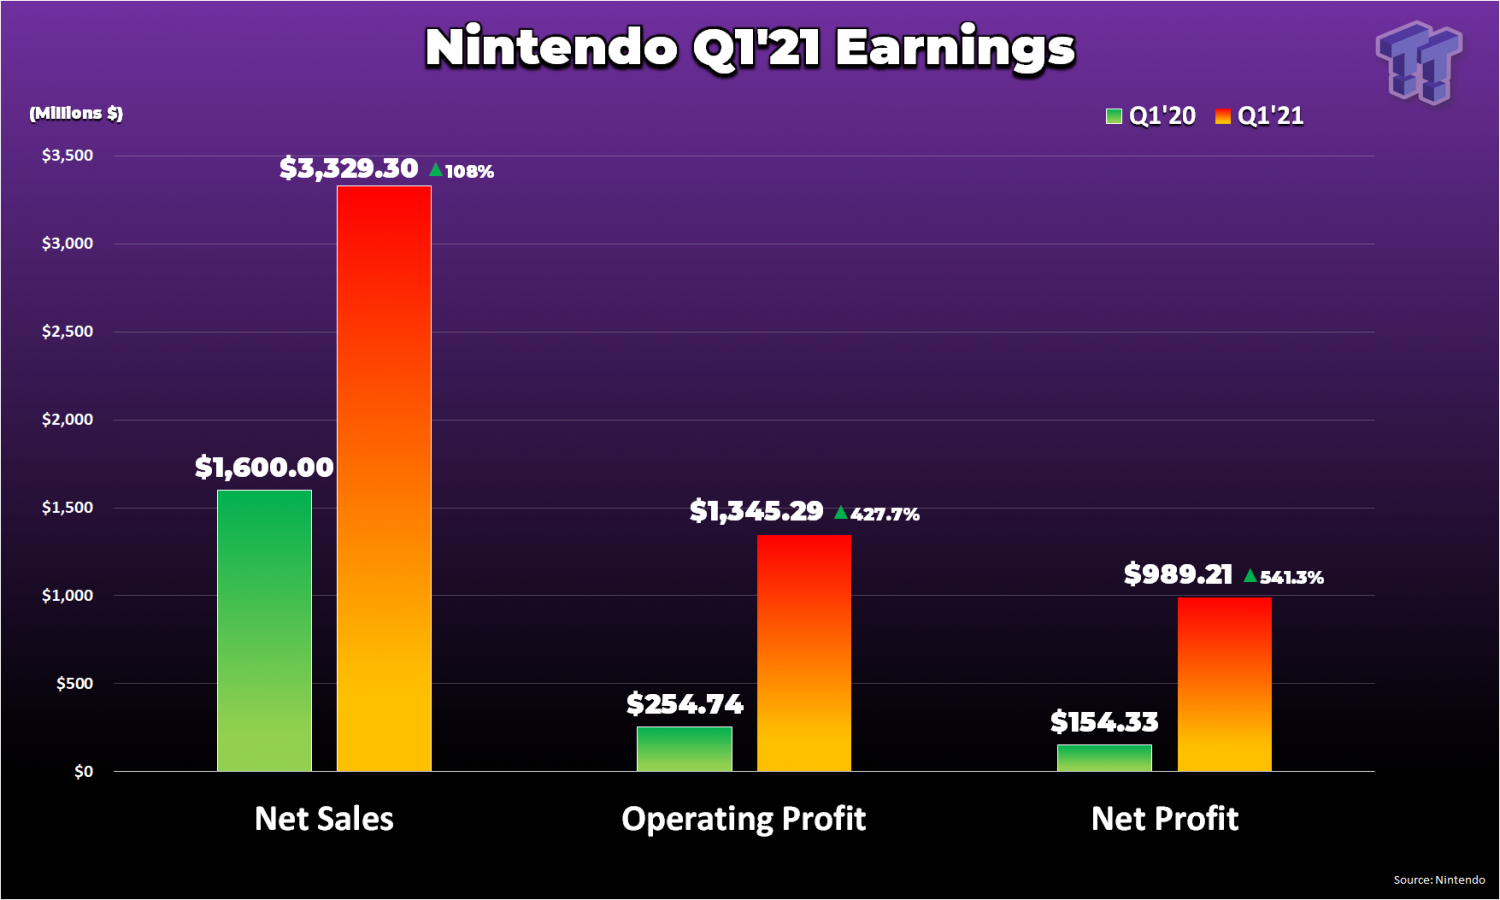 Nintendo Q1 profits skyrocket 541% to $989 million, forecast unchanged